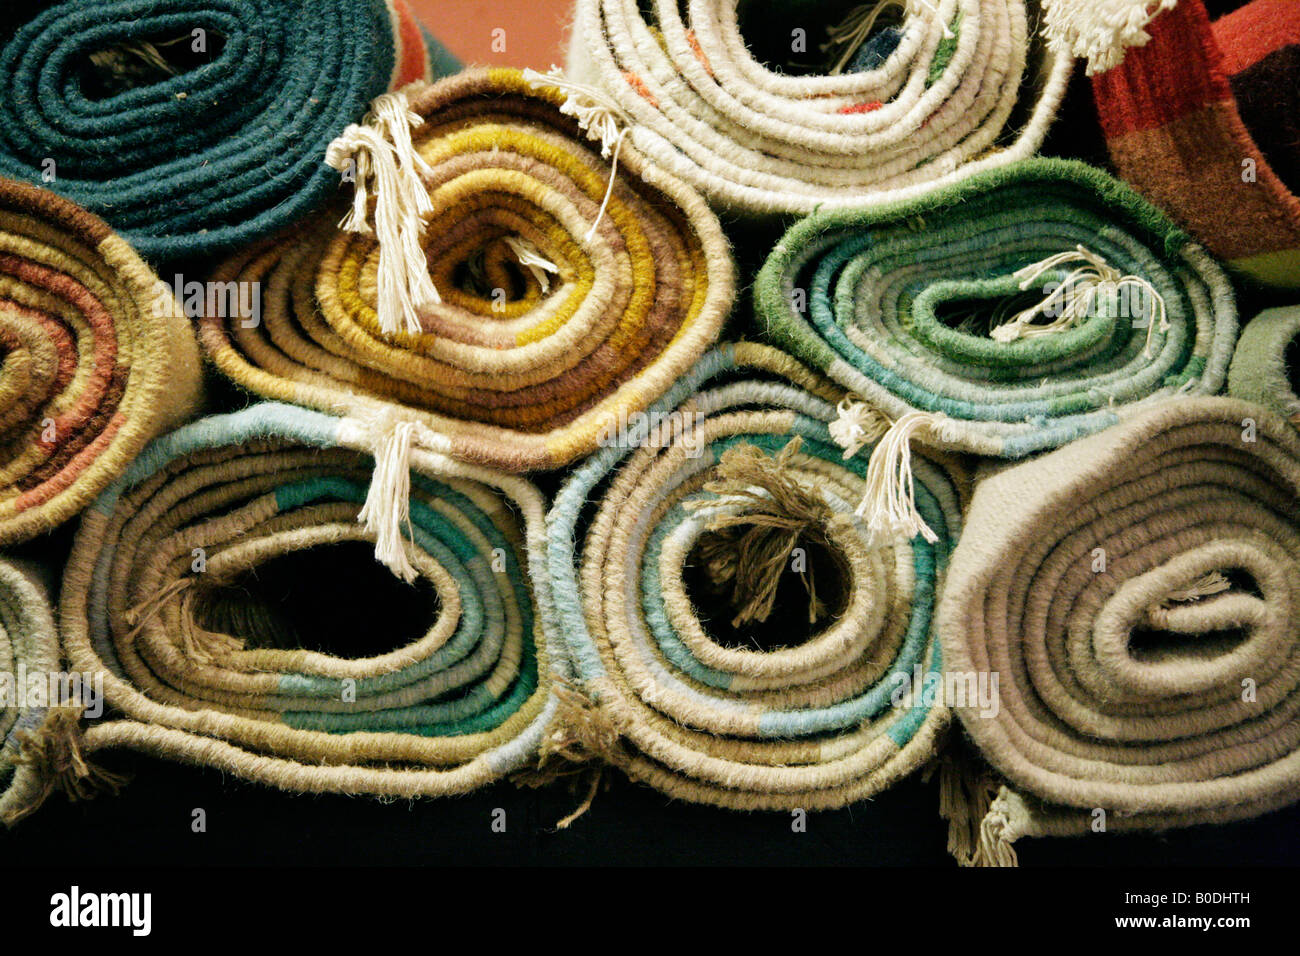 Rolled up woollen rugs - Stock Image